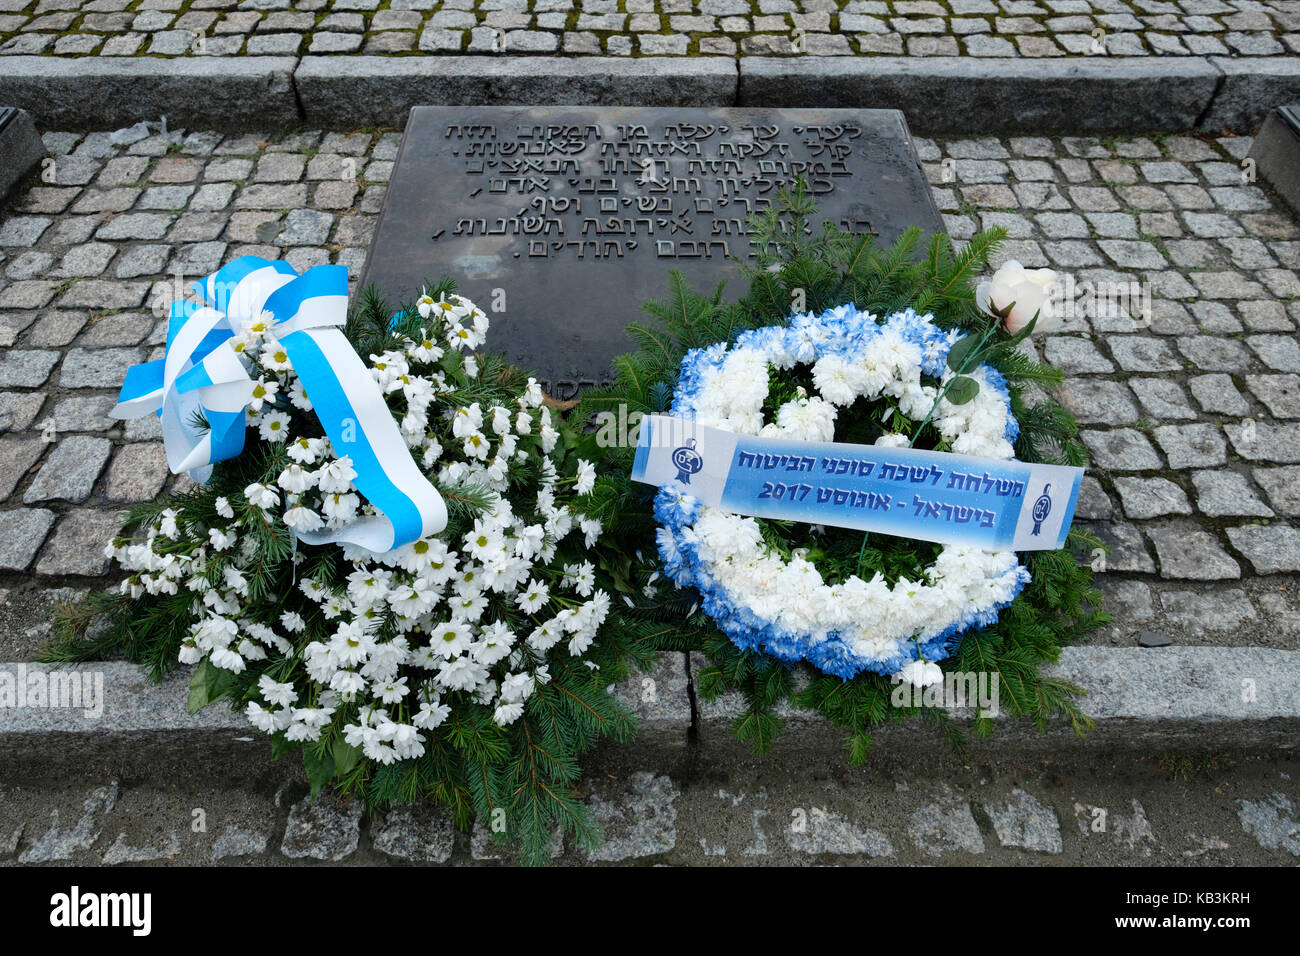 Memorial to the victims of Auschwitz II Birkenau Nazi concentration camp, Poland - Stock Image